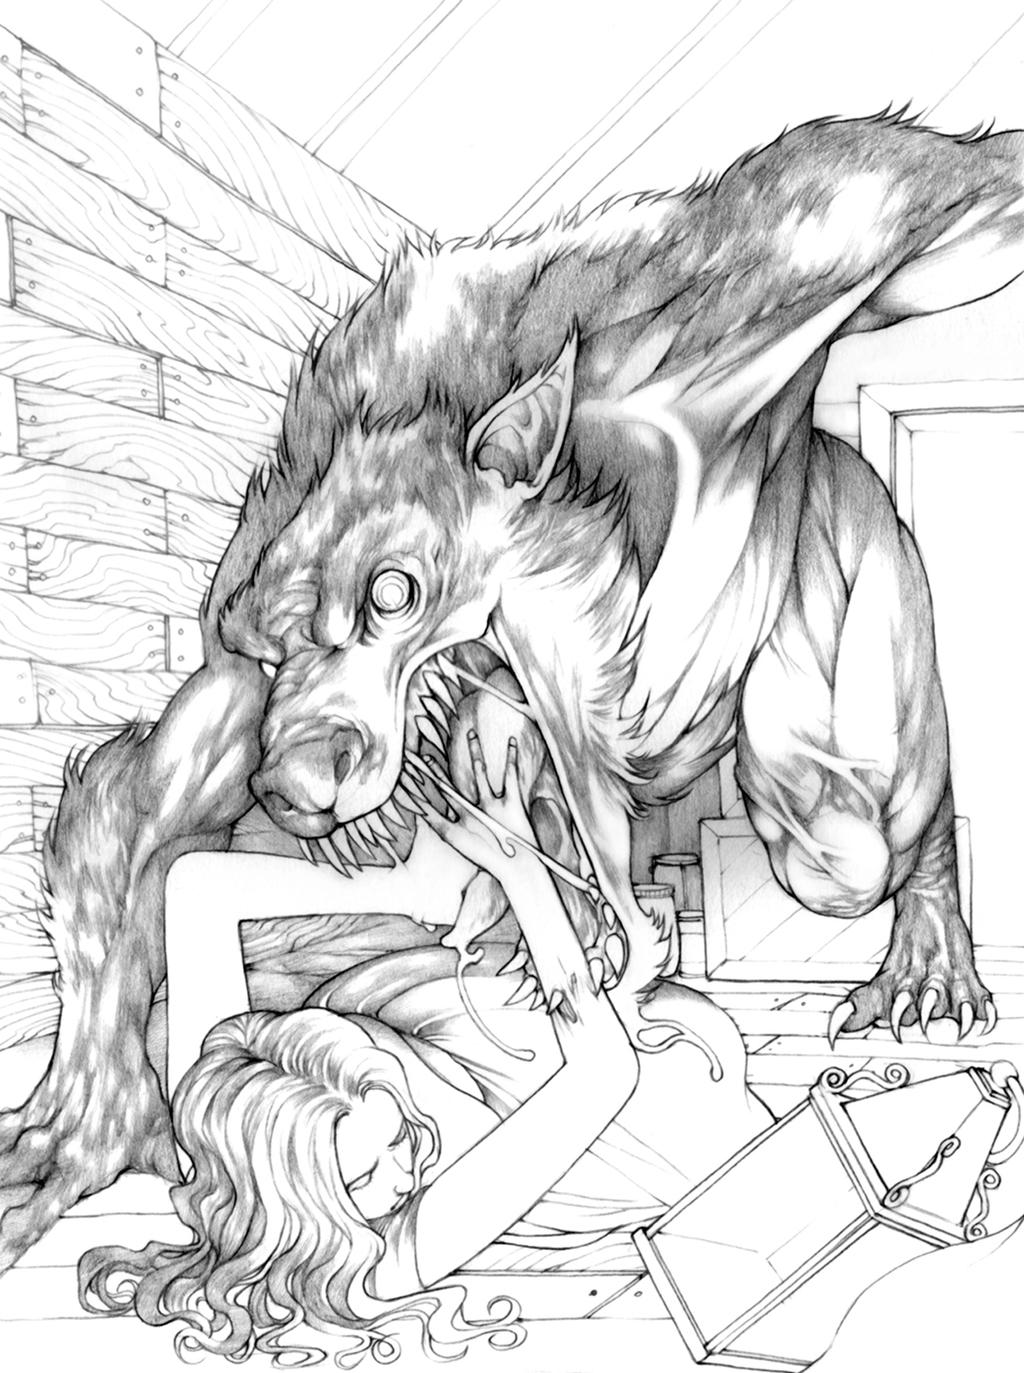 easy drawings of werewolves - photo #17